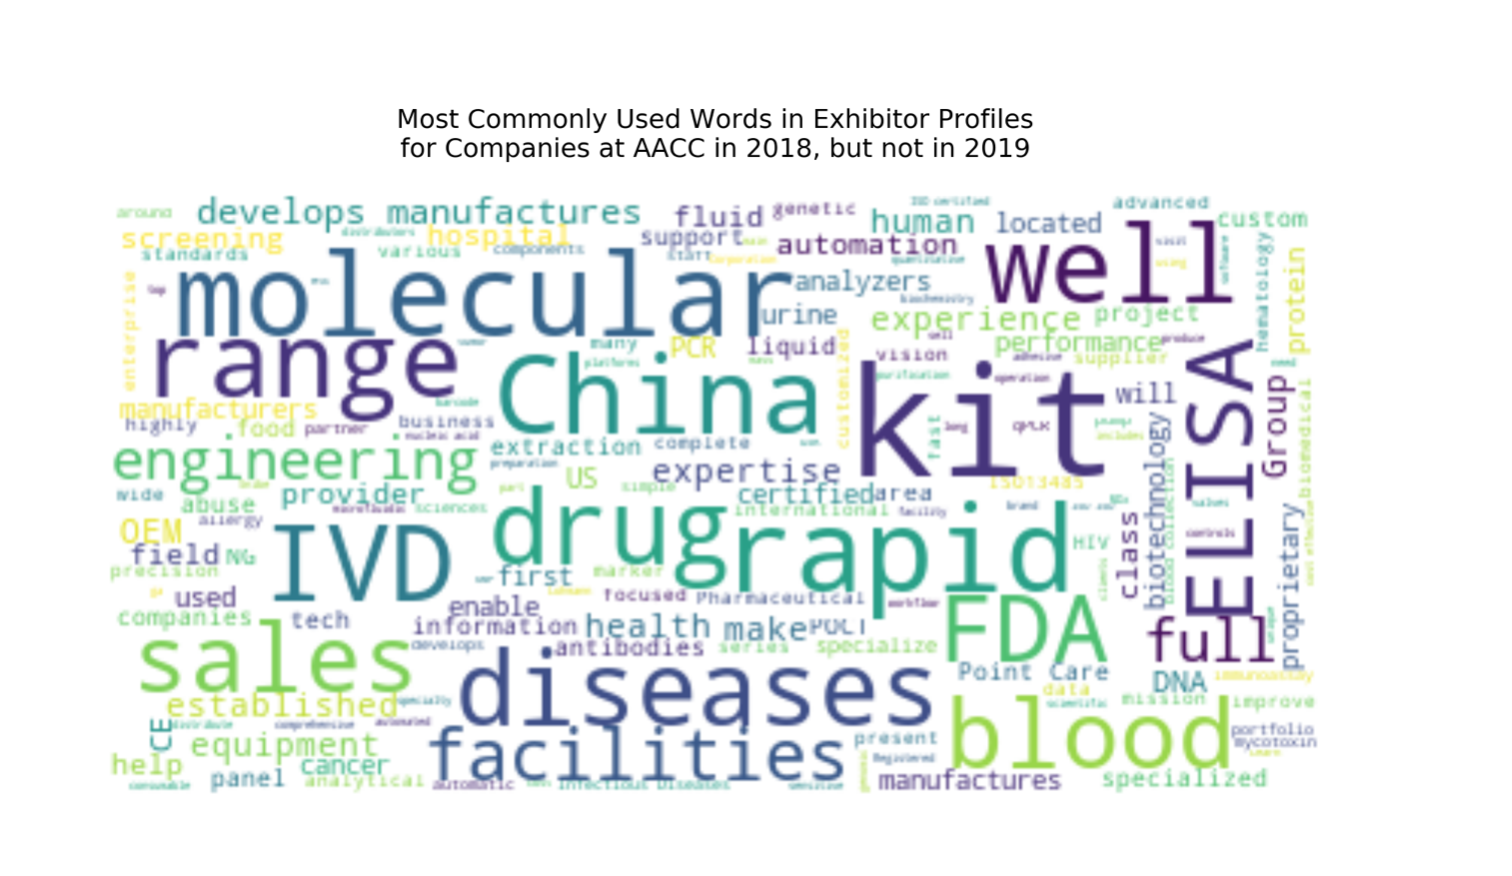 AACC most commonly used words in 2018 not in 2019